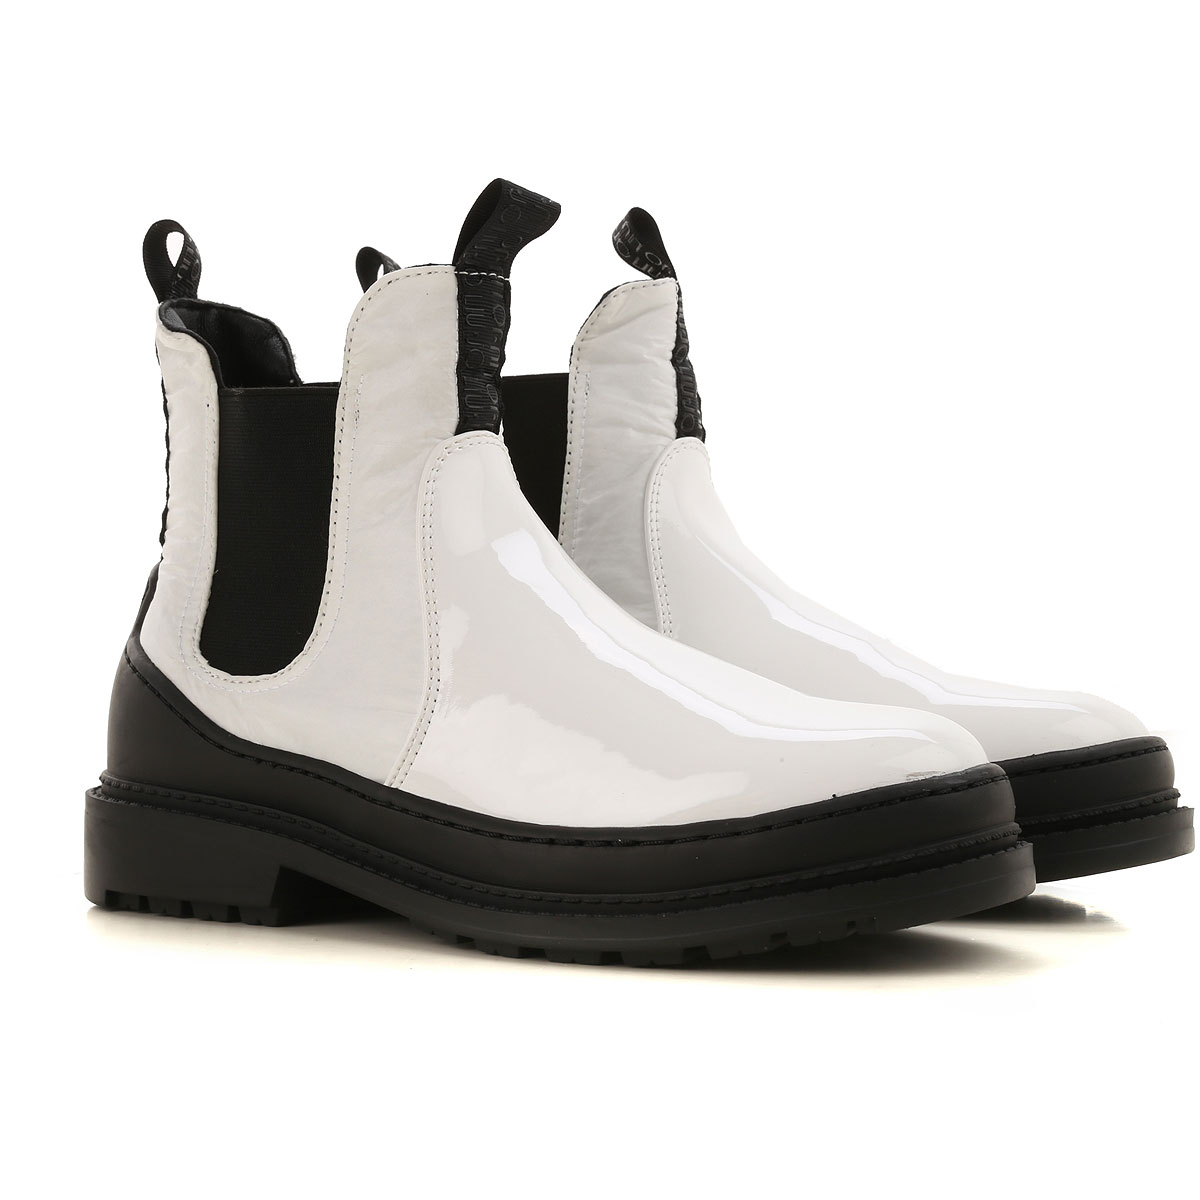 Liu Jo Chelsea Boots for Women On Sale, White, Eco Patent Leather, 2019, 5 6 7 8 9